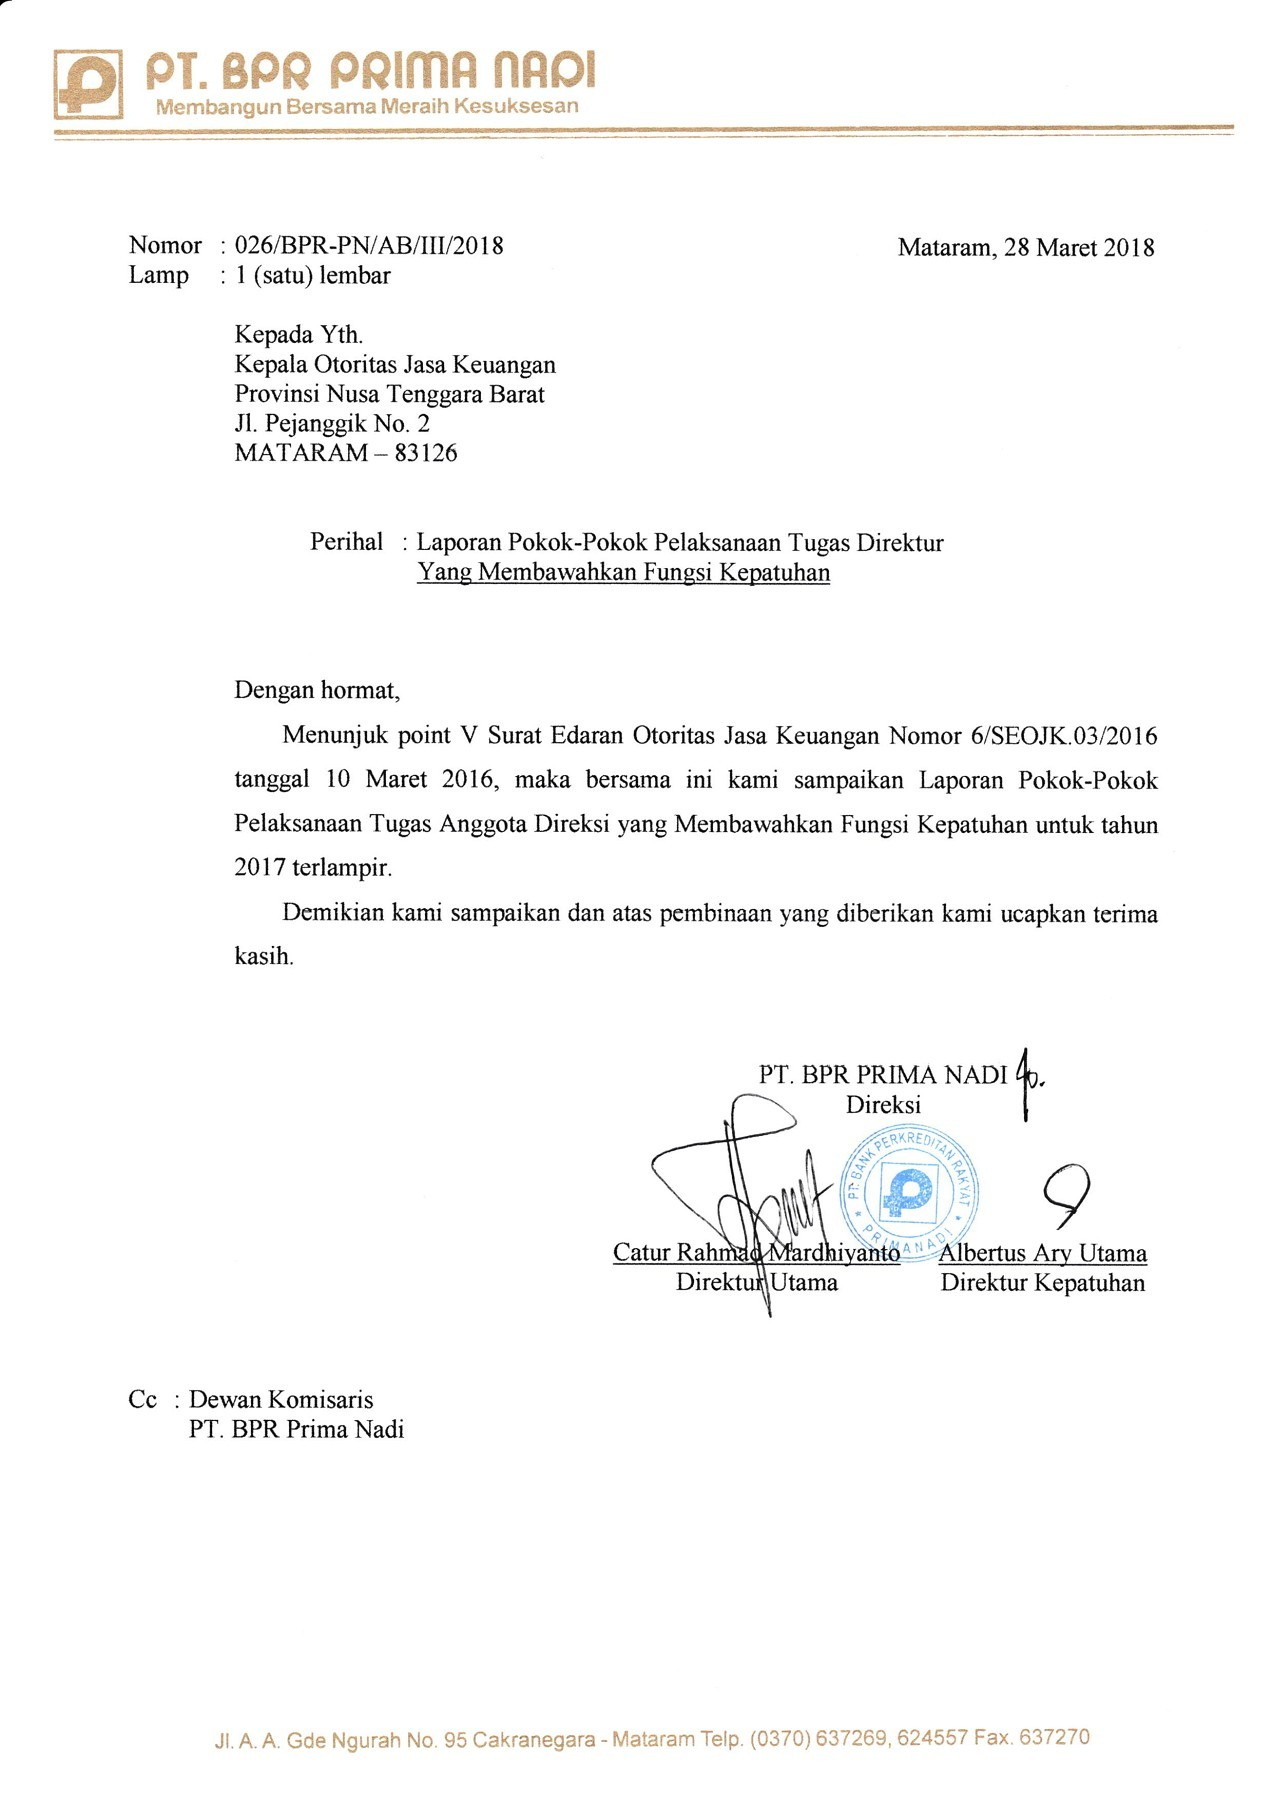 Contoh Surat Laporan : contoh, surat, laporan, Prima-NTB, Official, Homepage, FlipHTML5